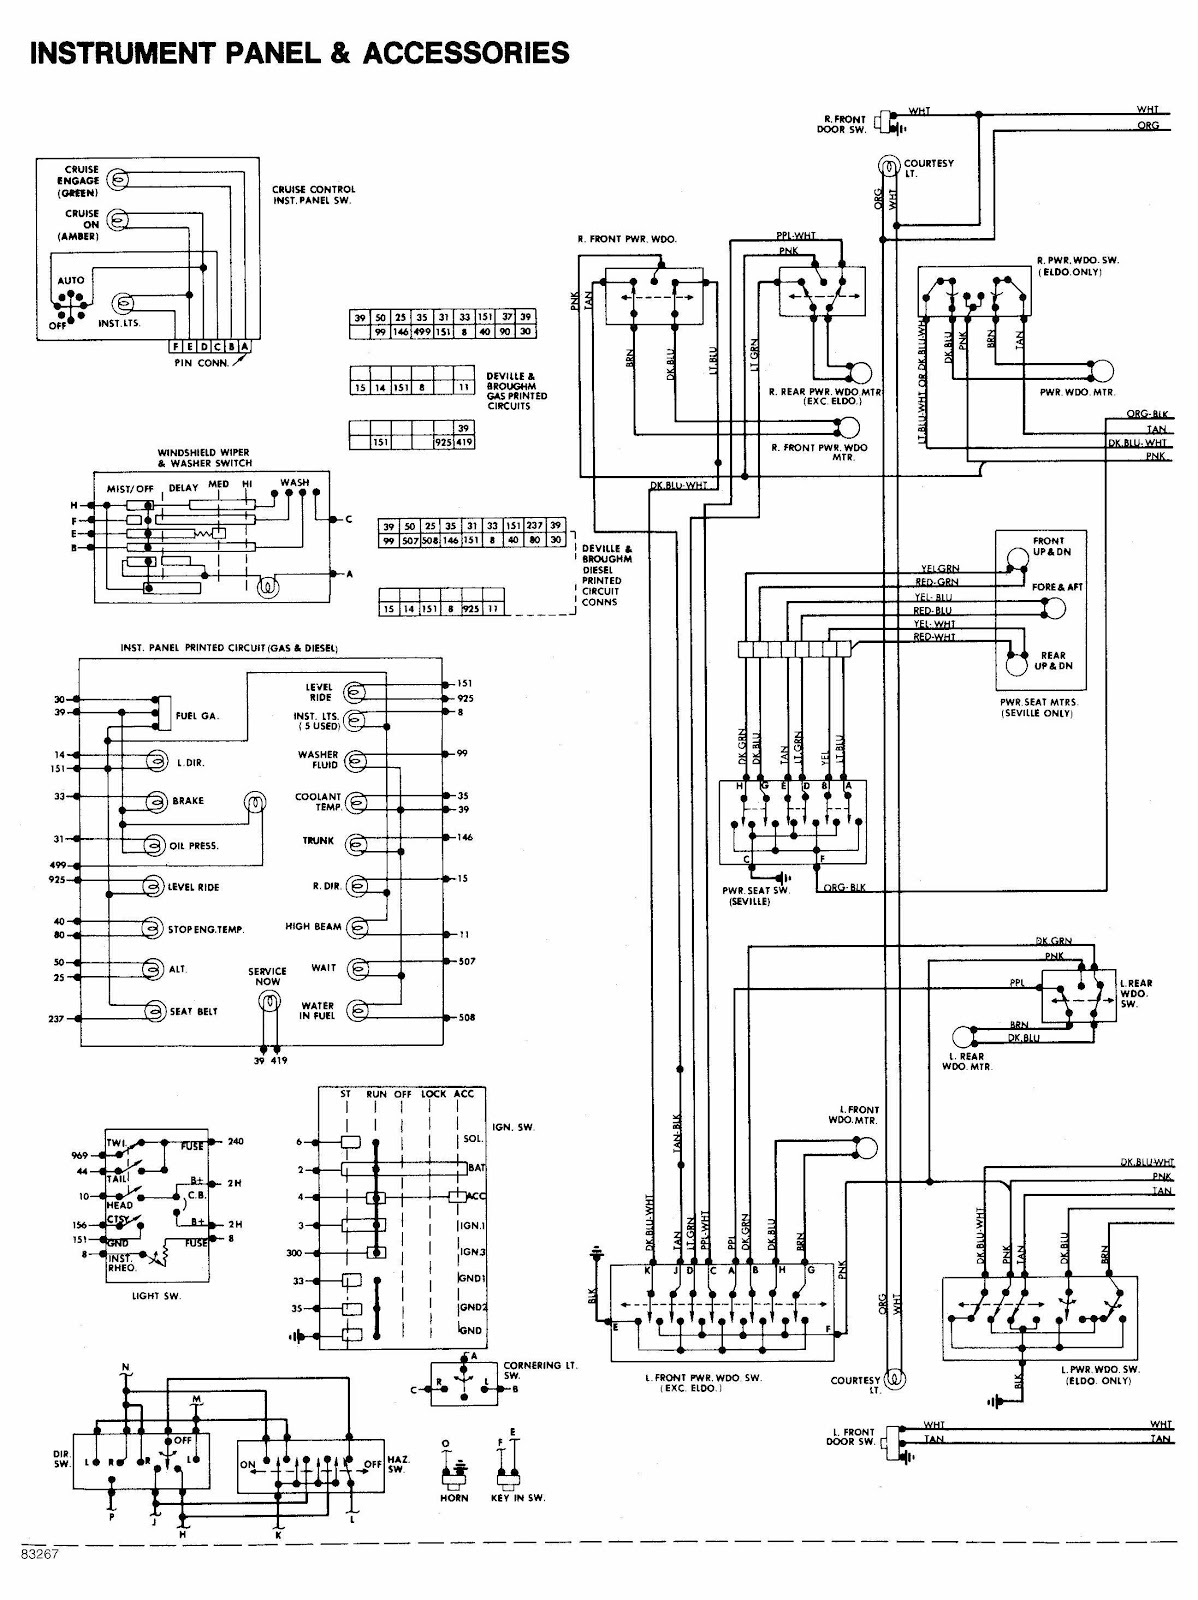 Vulcan Wiring Diagram On Wiring Diagram For 1976 Ford